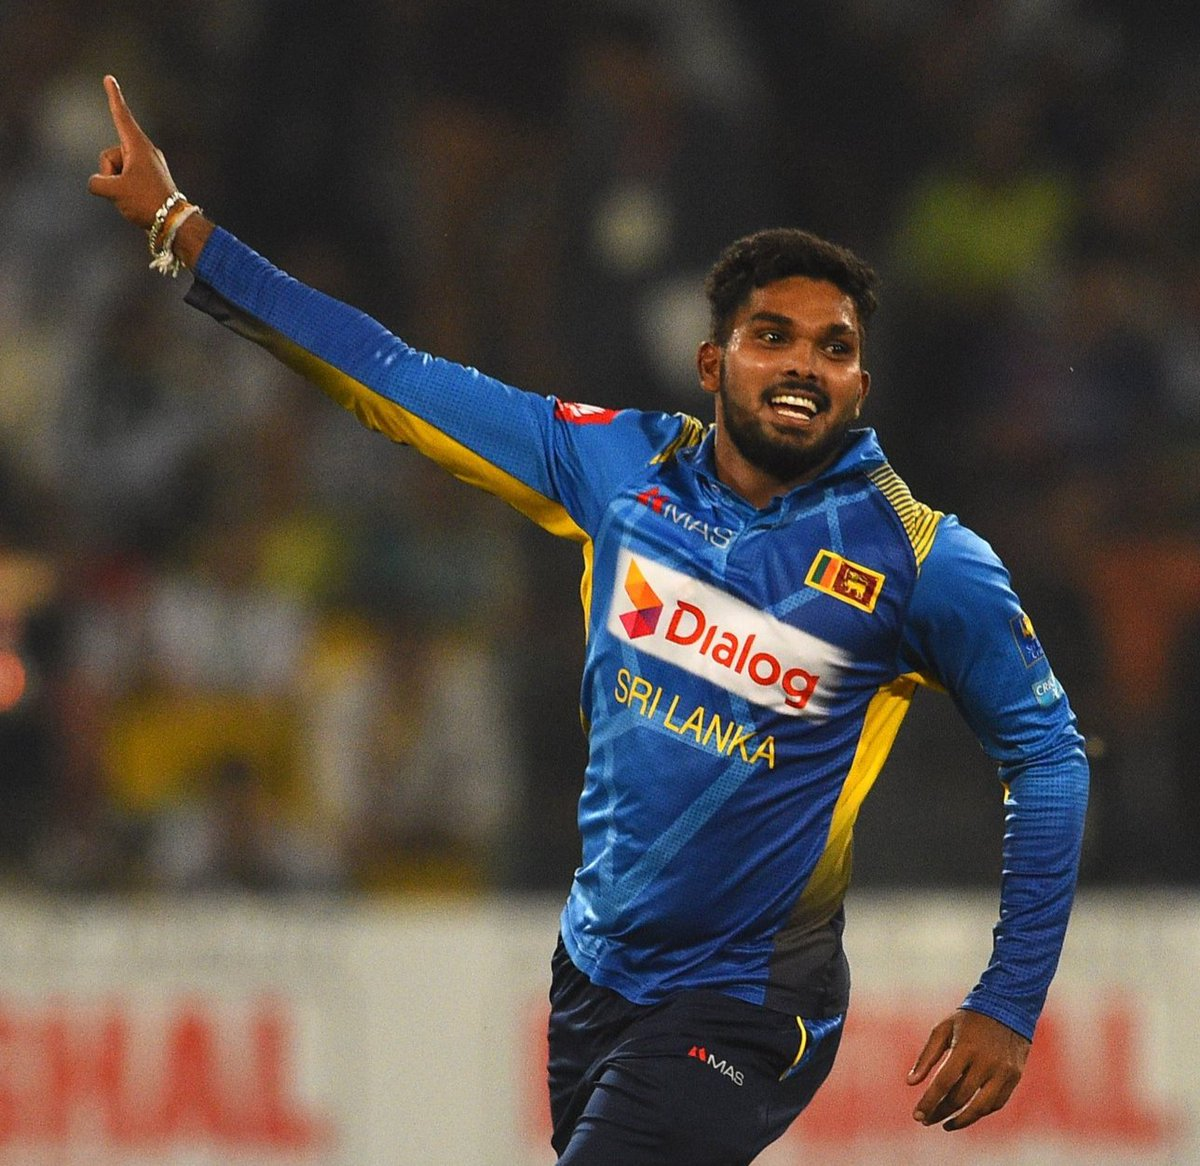 Spinner Wanidu Hasaranga, pacer Dushmantha Chameera, and all-rounder Tim David also join RCB for IPL 2021